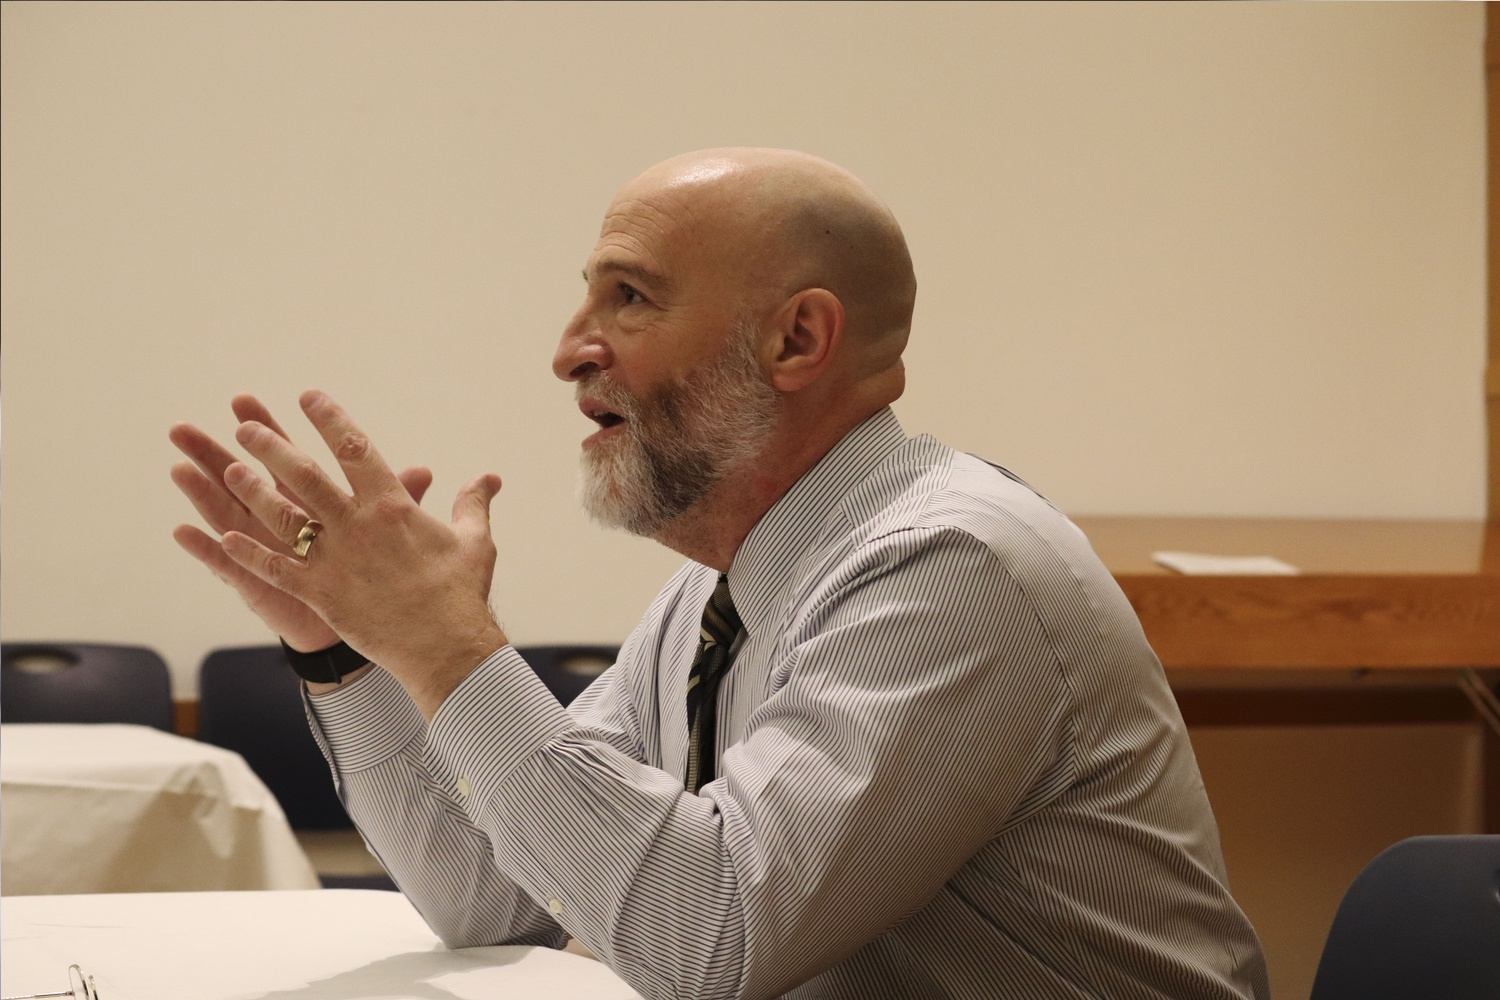 Jay M. Harris, professor of Jewish studies, spoke with Harvard affiliates about the history of anti-Semitism and the continued effects of prejudice at Harvard Hillel Tuesday night.